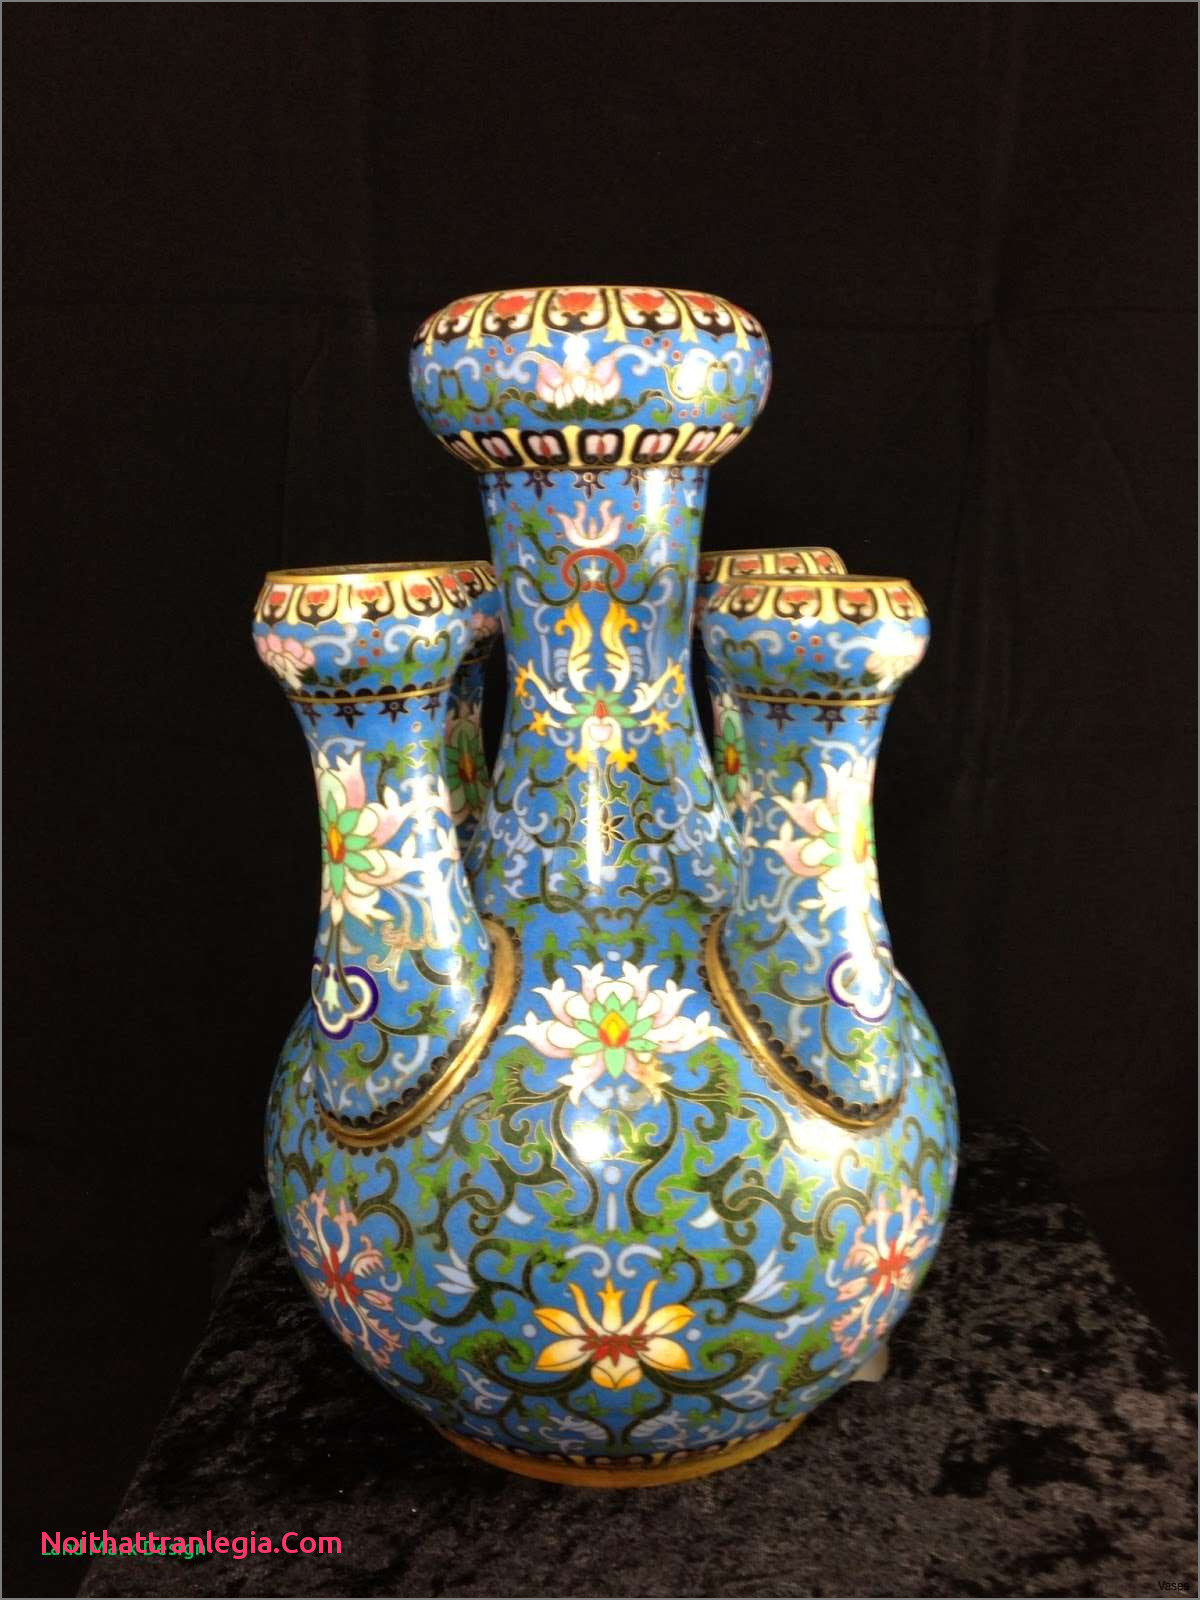 vintage porcelain vases of 20 chinese antique vase noithattranlegia vases design within 213 1h vases antique asian the increased trade of chinese ware during 16th century has significantly